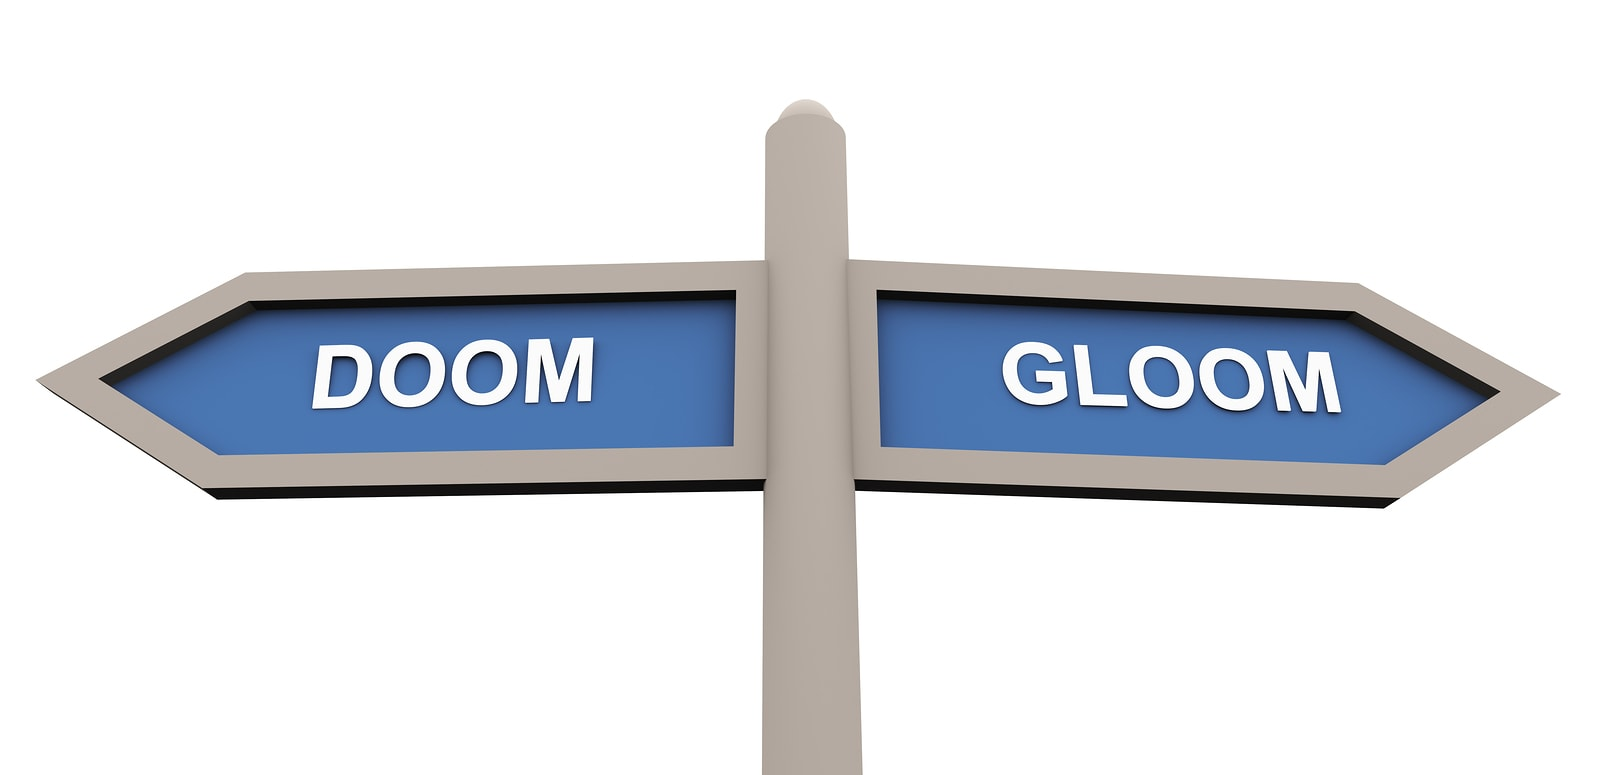 With The Gloom And Doom Of Drupal 6, Let's Learn From Our Shortcomings